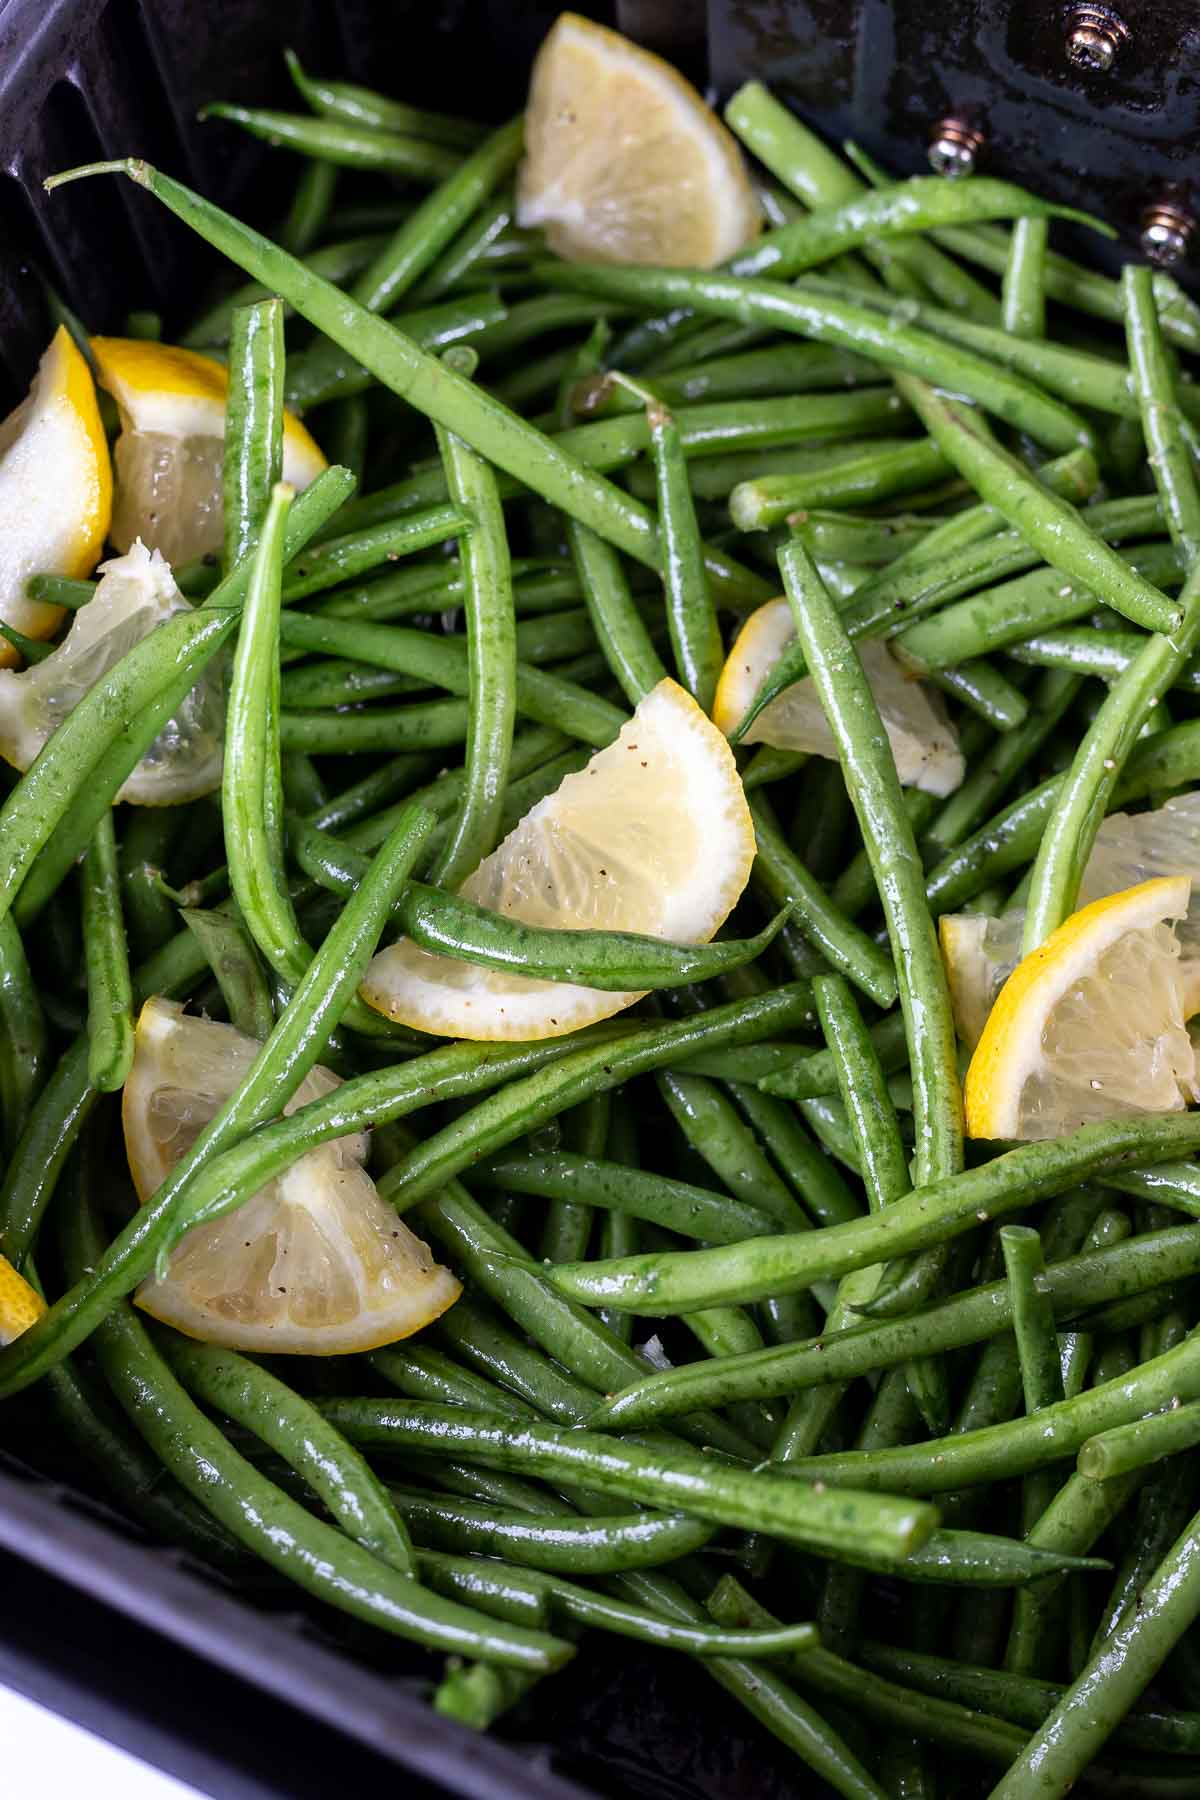 fresh lemons and green beans in air fryer basket